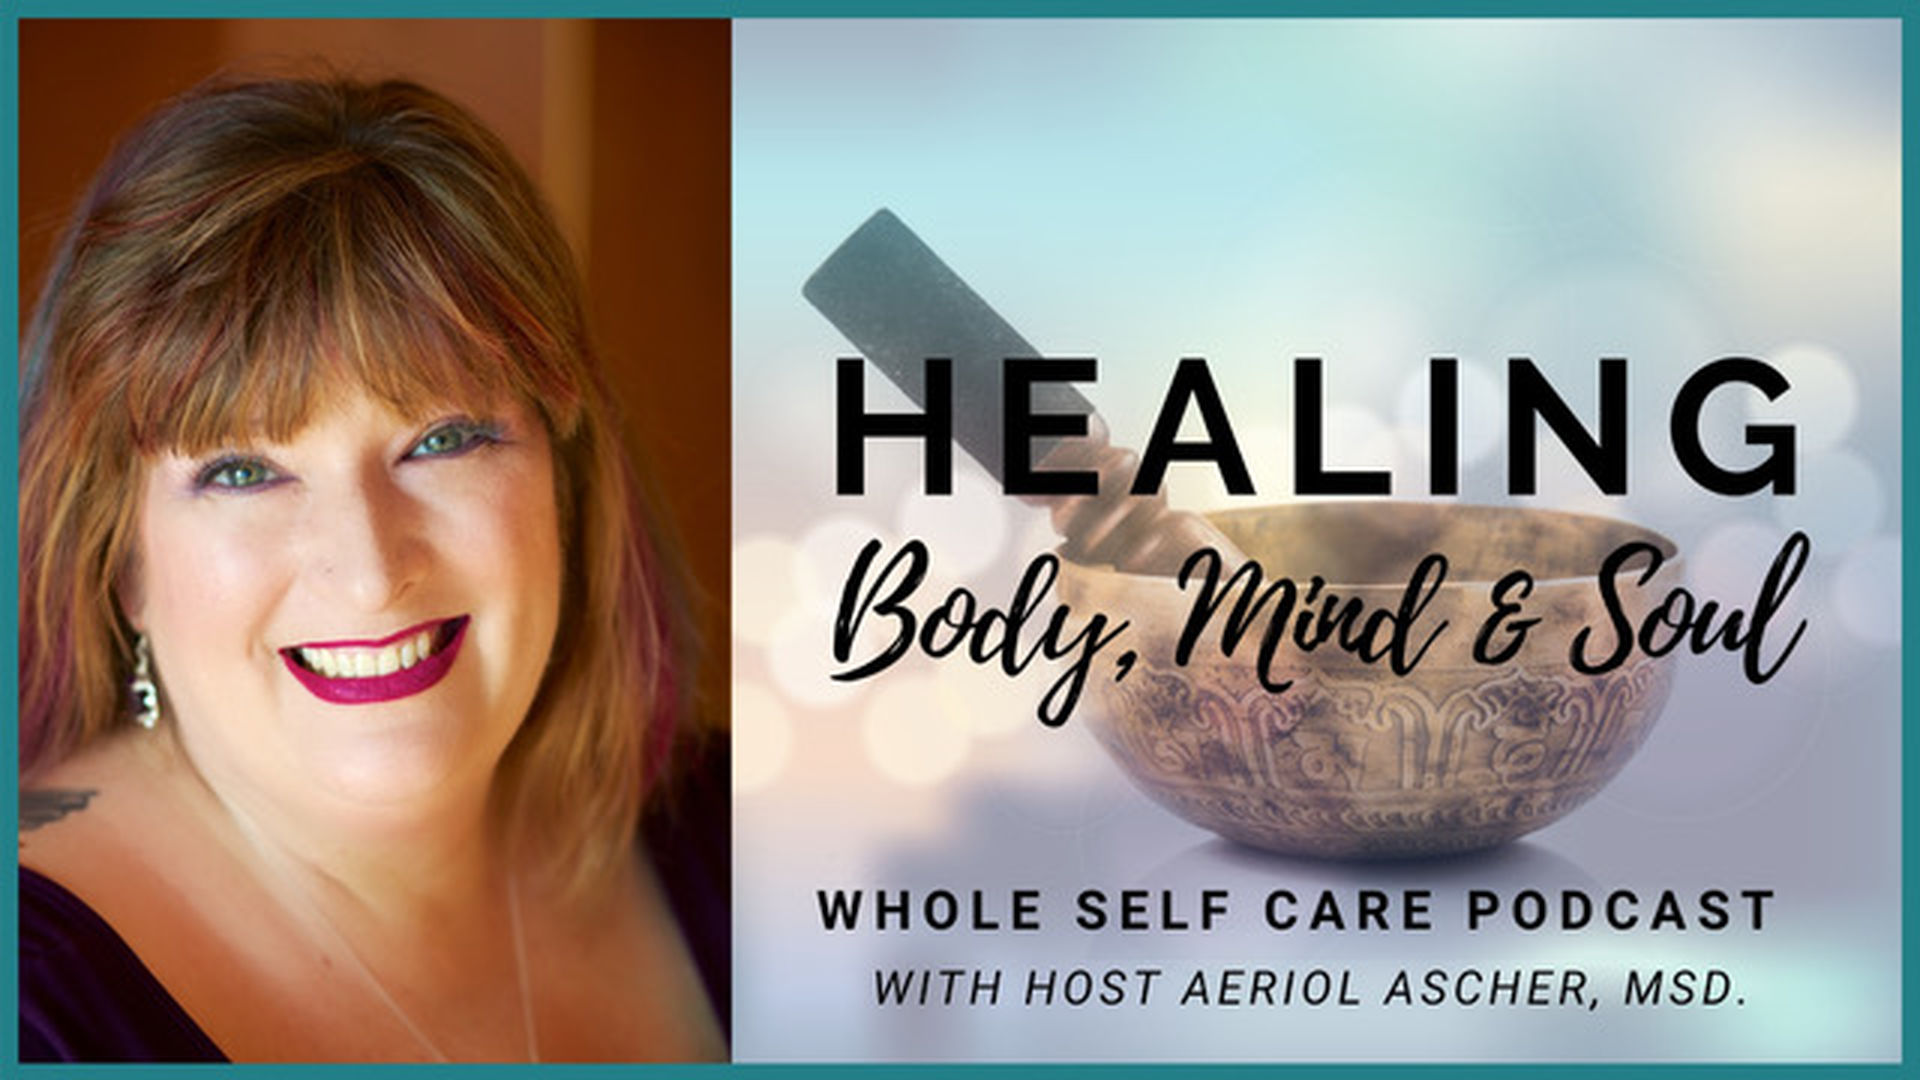 Self healing from anxiety, panic and pain with Reiki Energy: an Interview with Heather Larkin